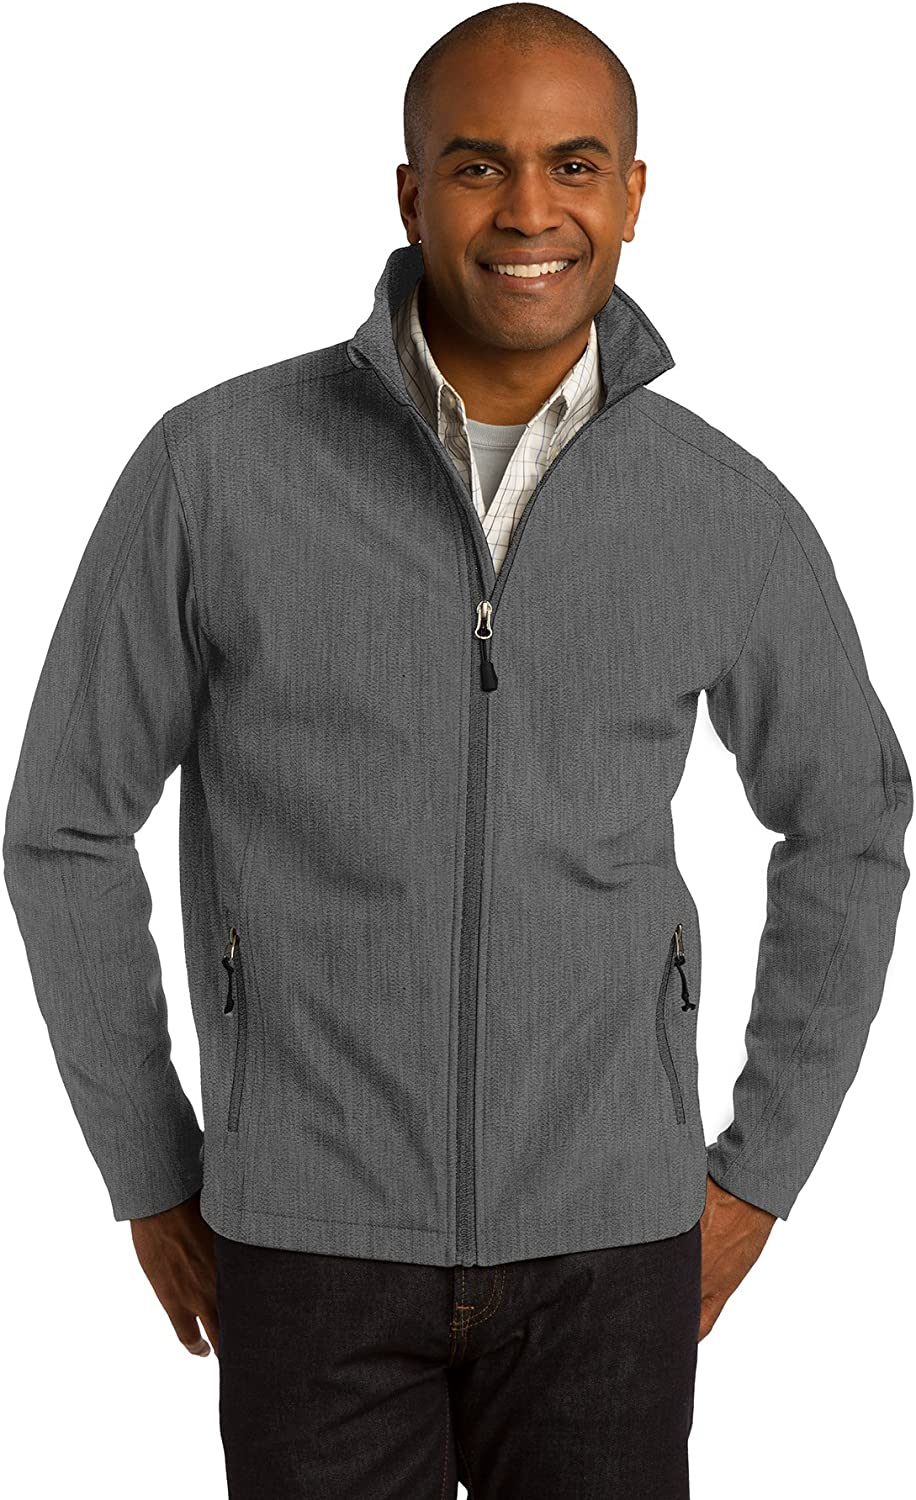 Port Authority gift free shipping Men's Core Shell Soft Jacket. J317